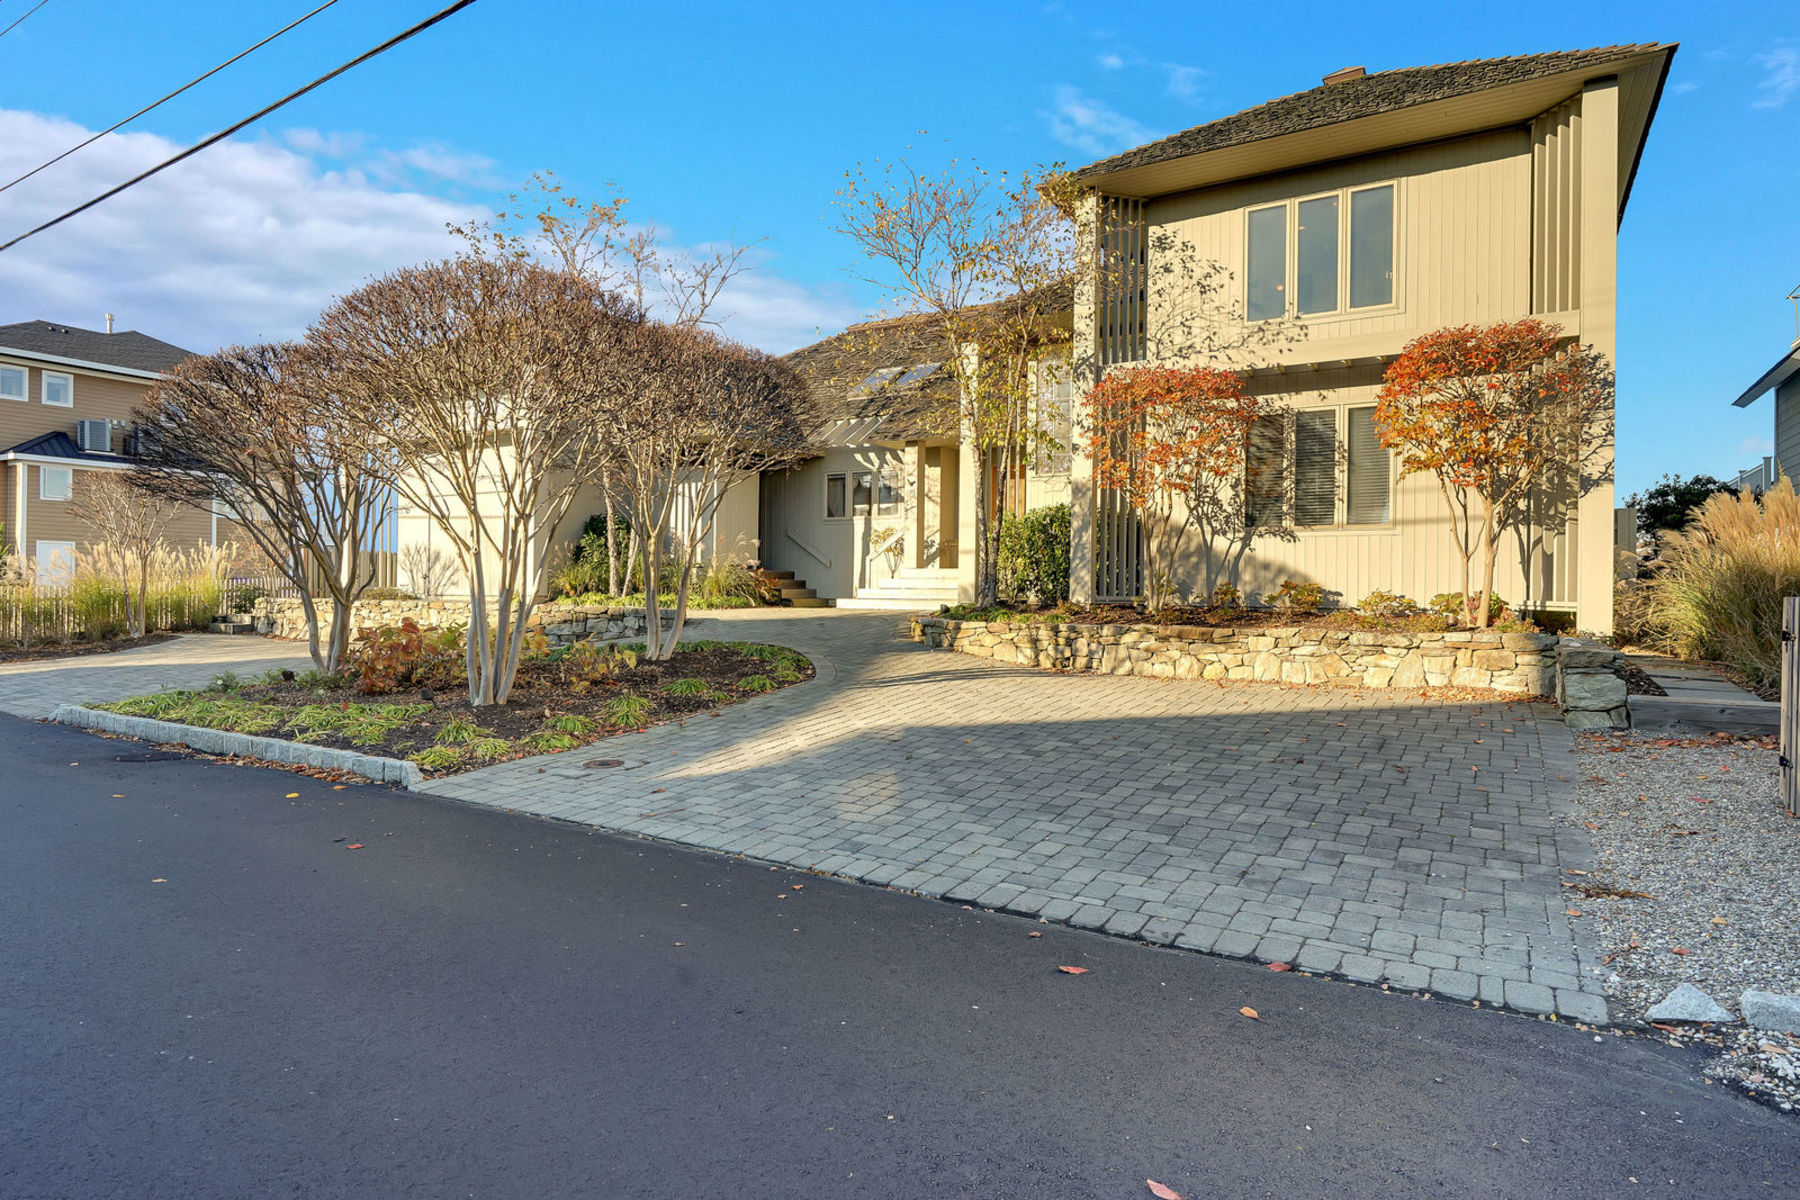 Single Family Home for Sale at Spectacular Covefront Home In Prime Waterfront Location 272 Harbor COurt, Normandy Beach, New Jersey 08739 United States